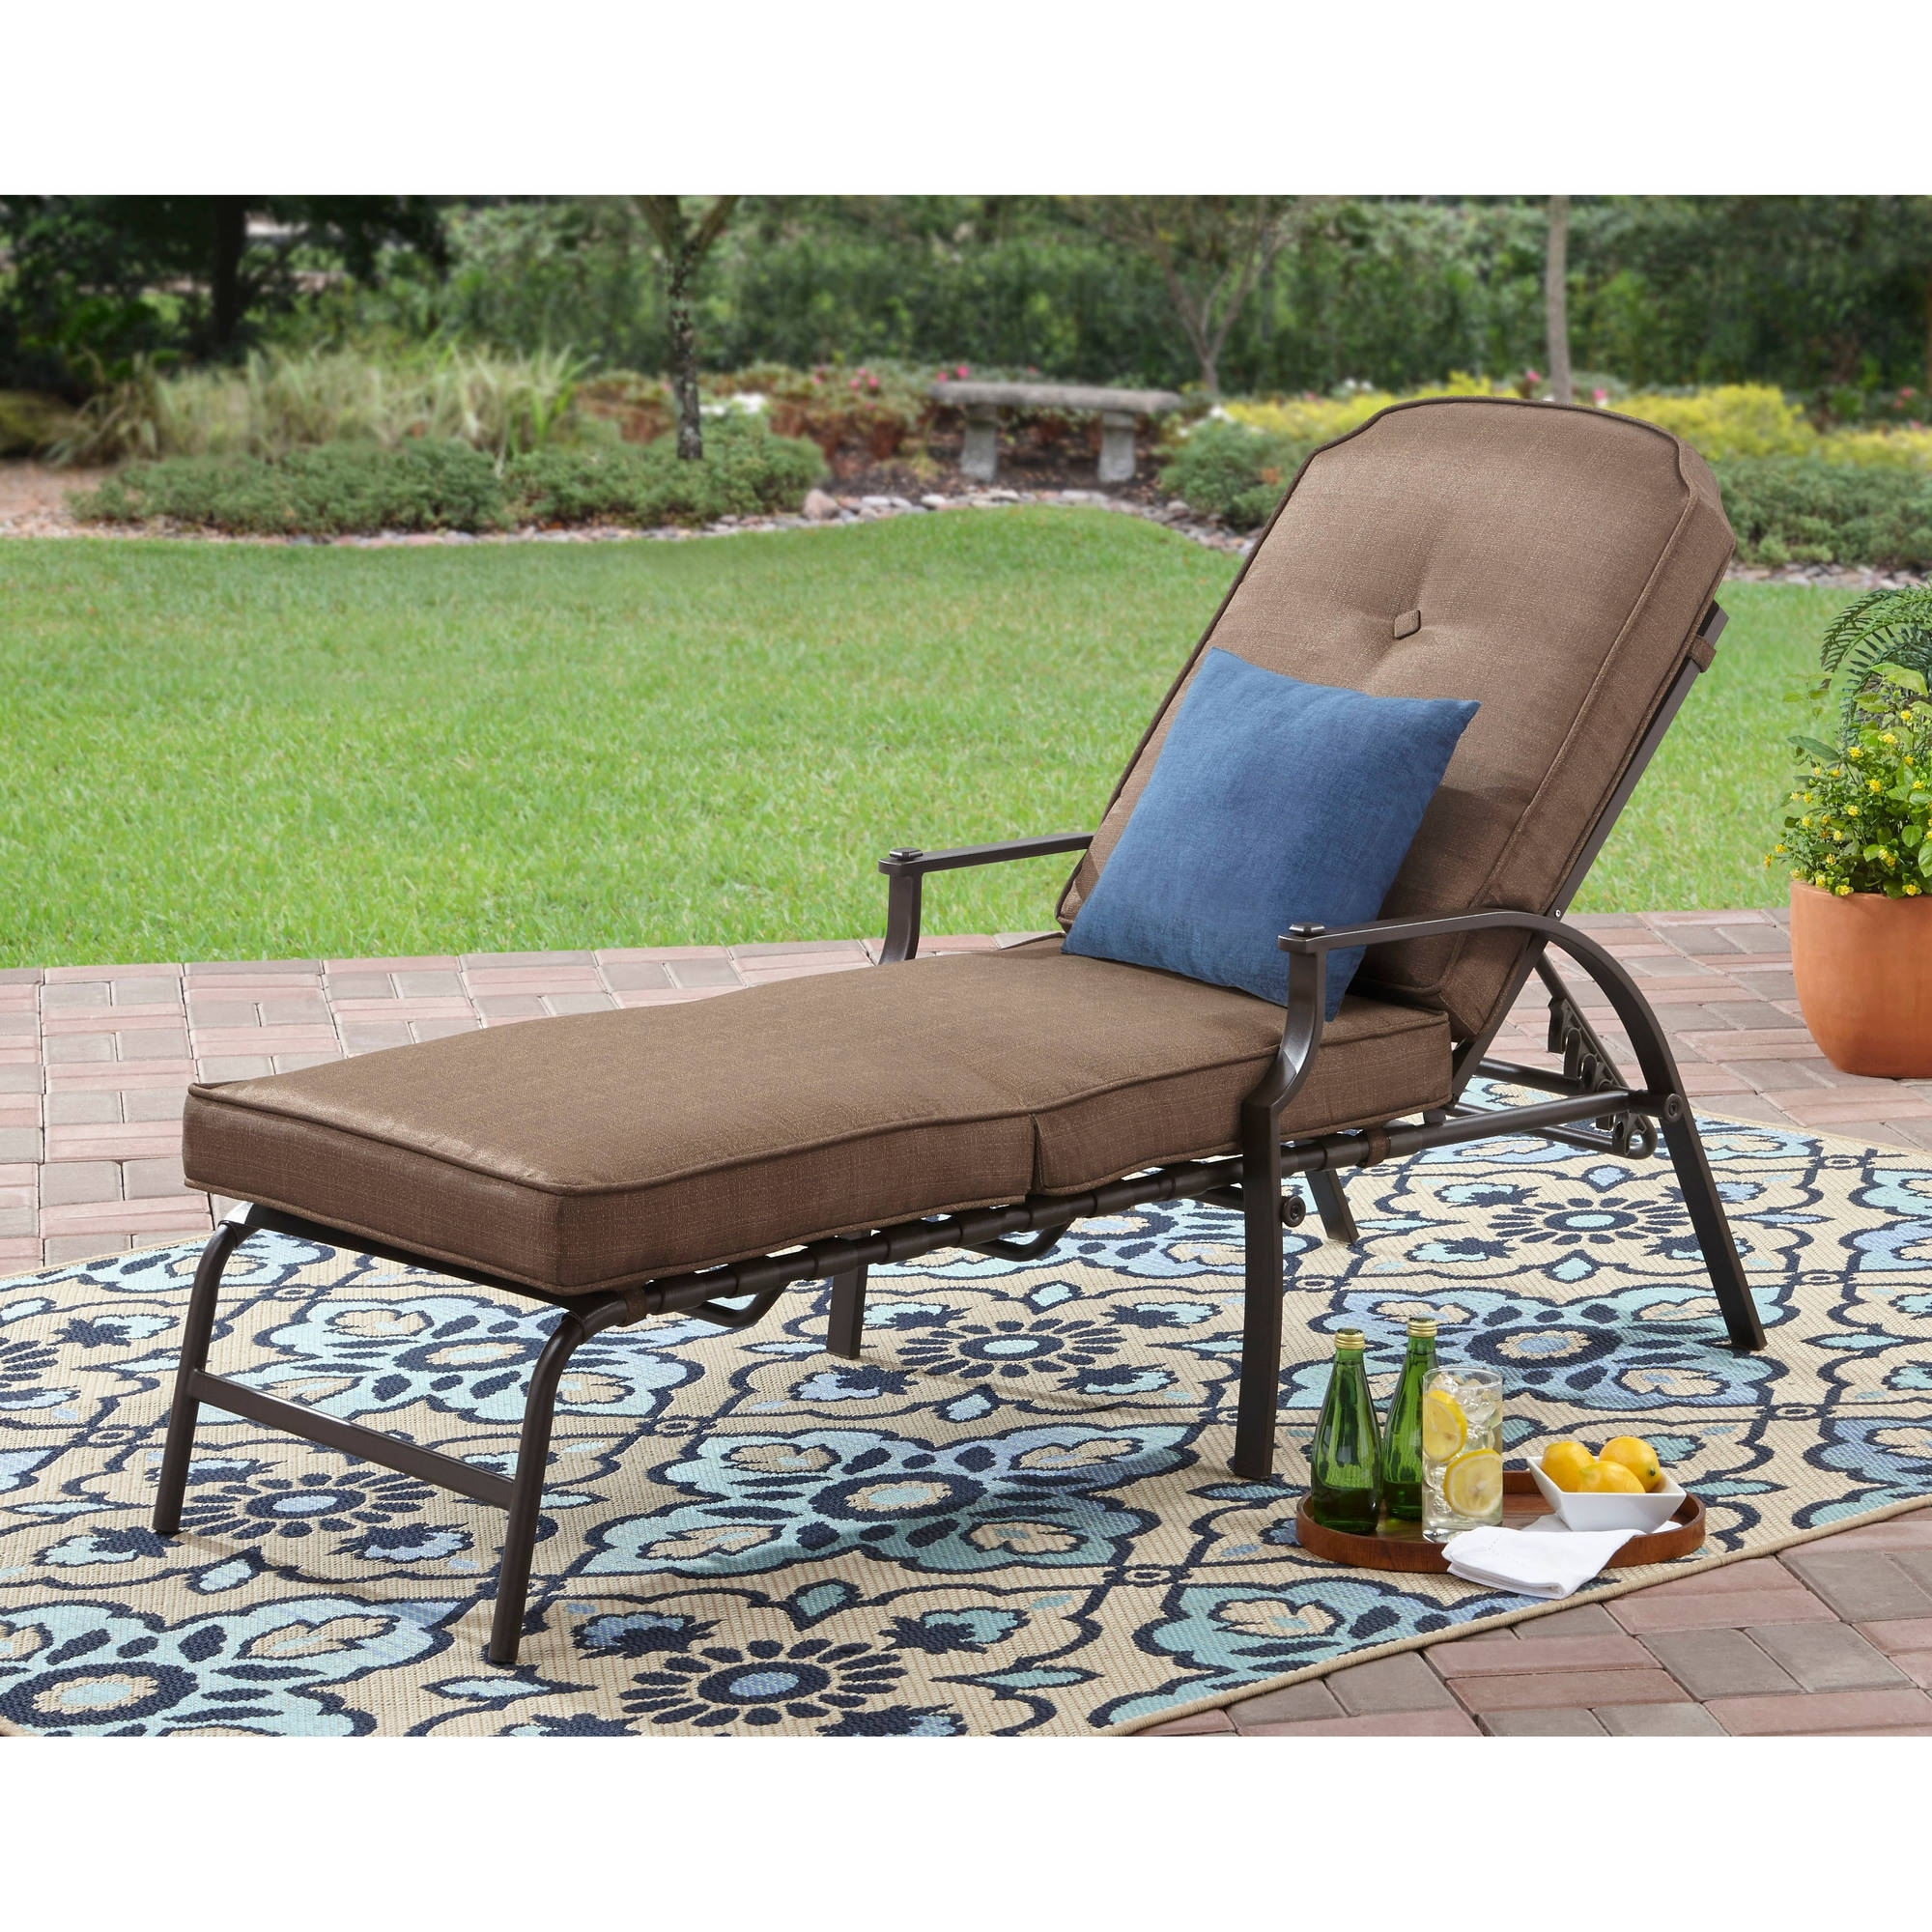 Most Popular Outdoor Chaise Lounge Chairs At Walmart Intended For Mainstays Wentworth Chaise Lounge – Walmart (View 6 of 15)